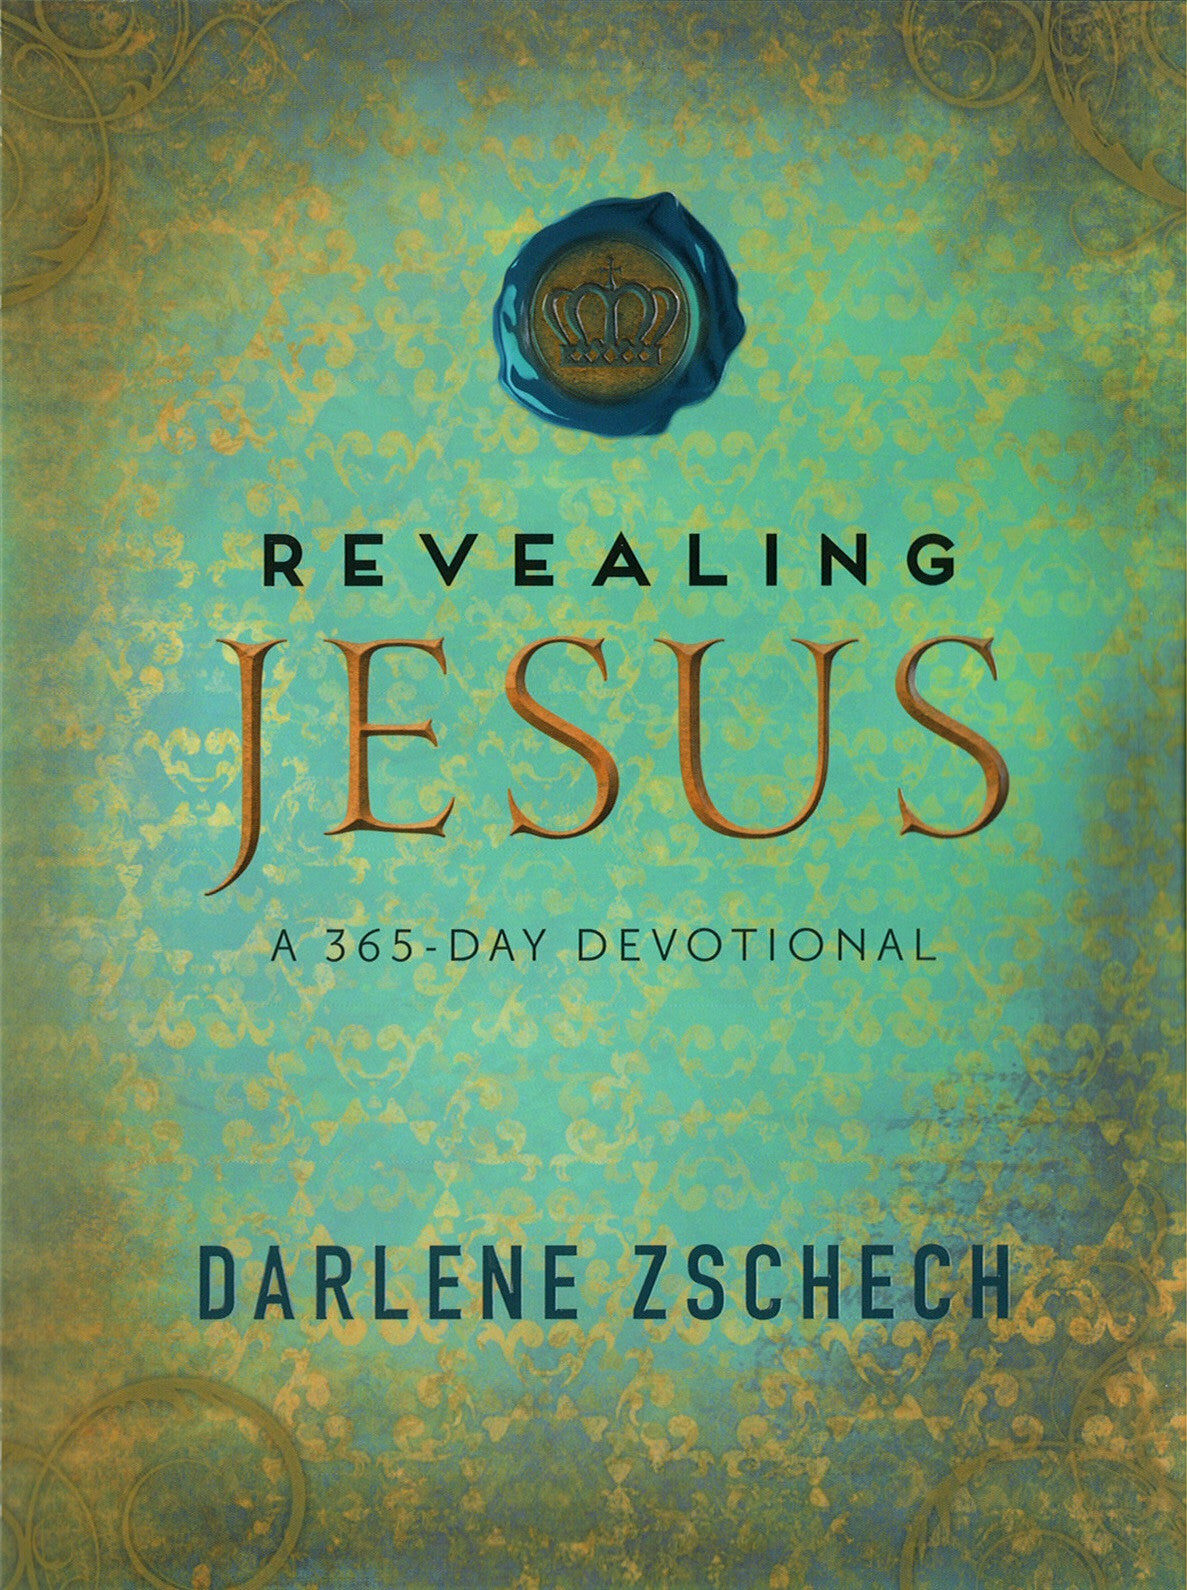 ROCKONLINE | New Creation Church | NCC | Joseph Prince | ROCK Bookshop | ROCK Bookstore | Star Vista | Devotional | Daily Devo | Christian Living | Worship | Faith | God's Word | Scriptures | God's Love | Revealing Jesus 365-Day Devotional by Darlene Zschech | Free delivery for Singapore Orders above $50